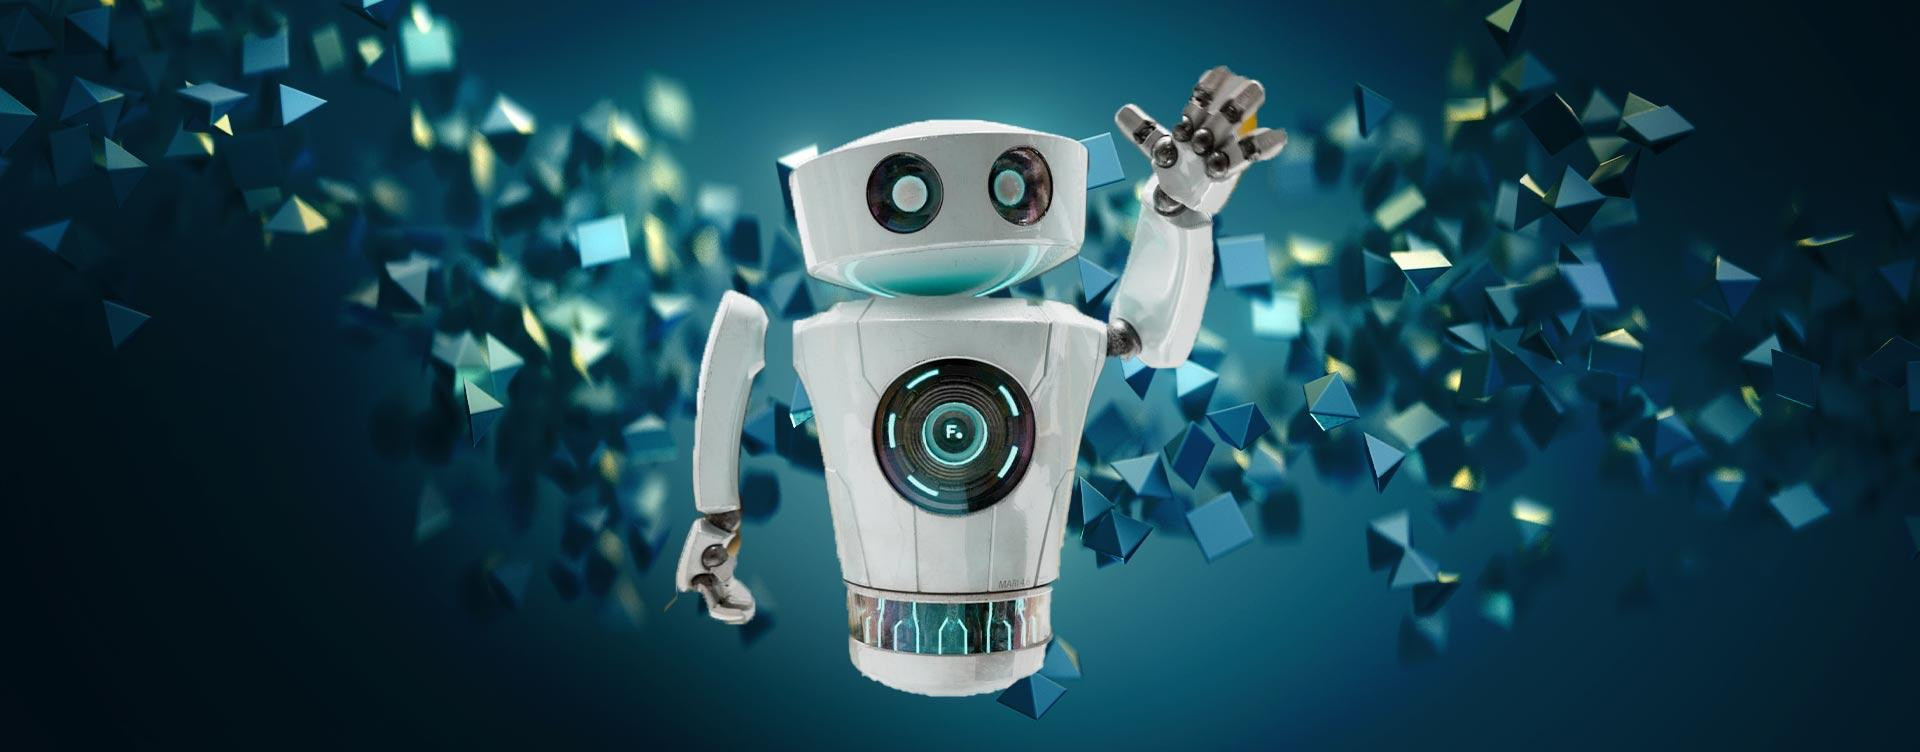 3D robot against abstract background